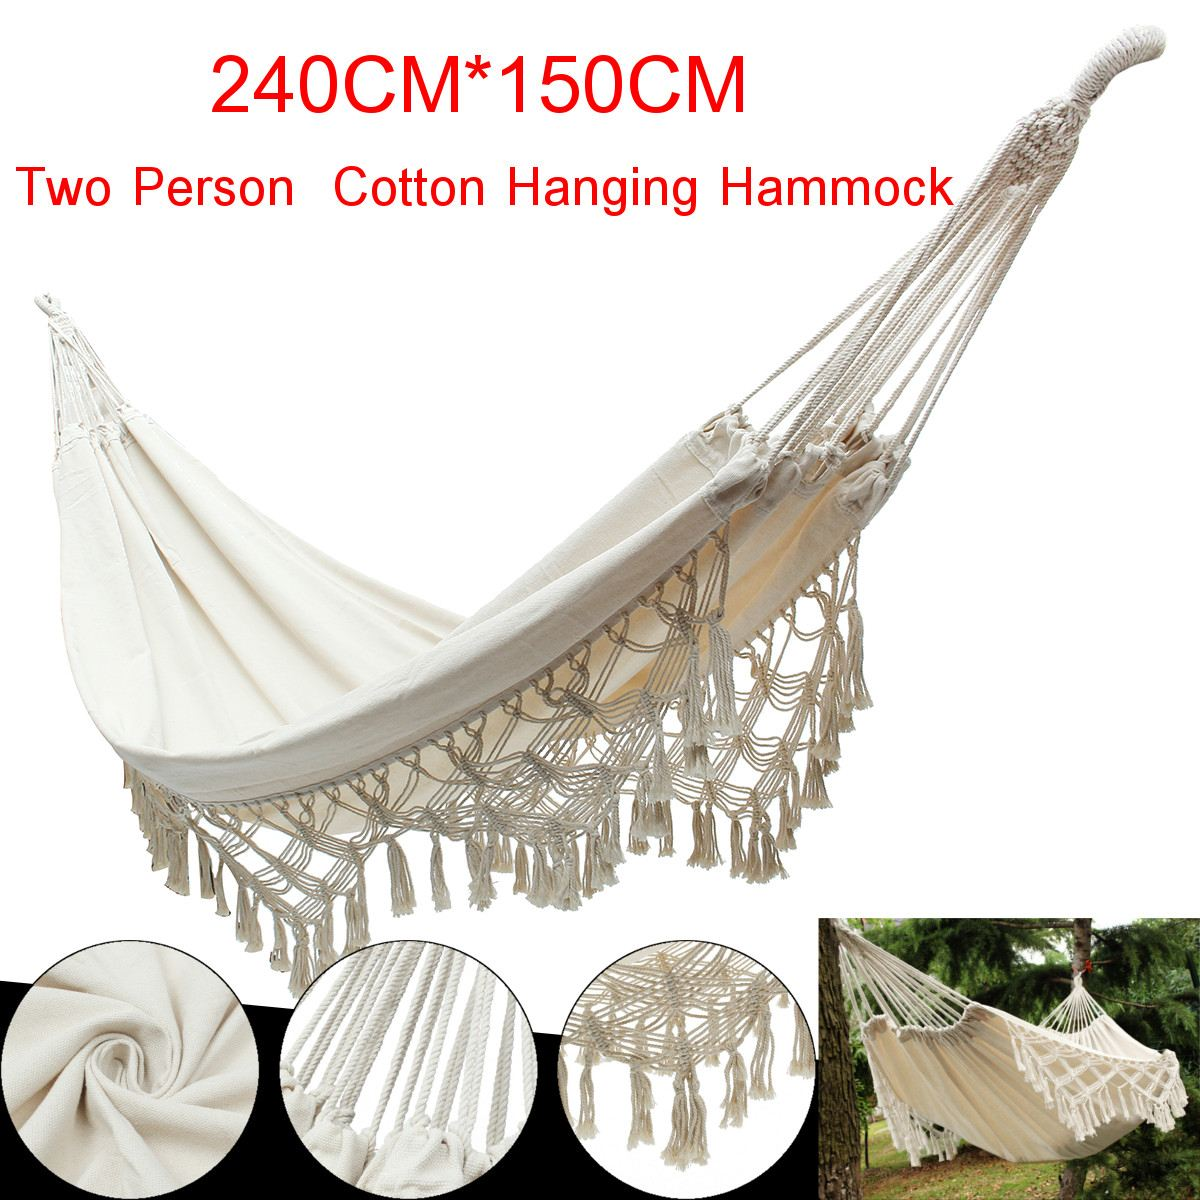 Remarkable Thicken Double Hammock Chairs Swing Hanging Outdoor Camping Sleep Bed Dormitory Kids Hammock Hanging Chair Home Garden Cotton Theyellowbook Wood Chair Design Ideas Theyellowbookinfo